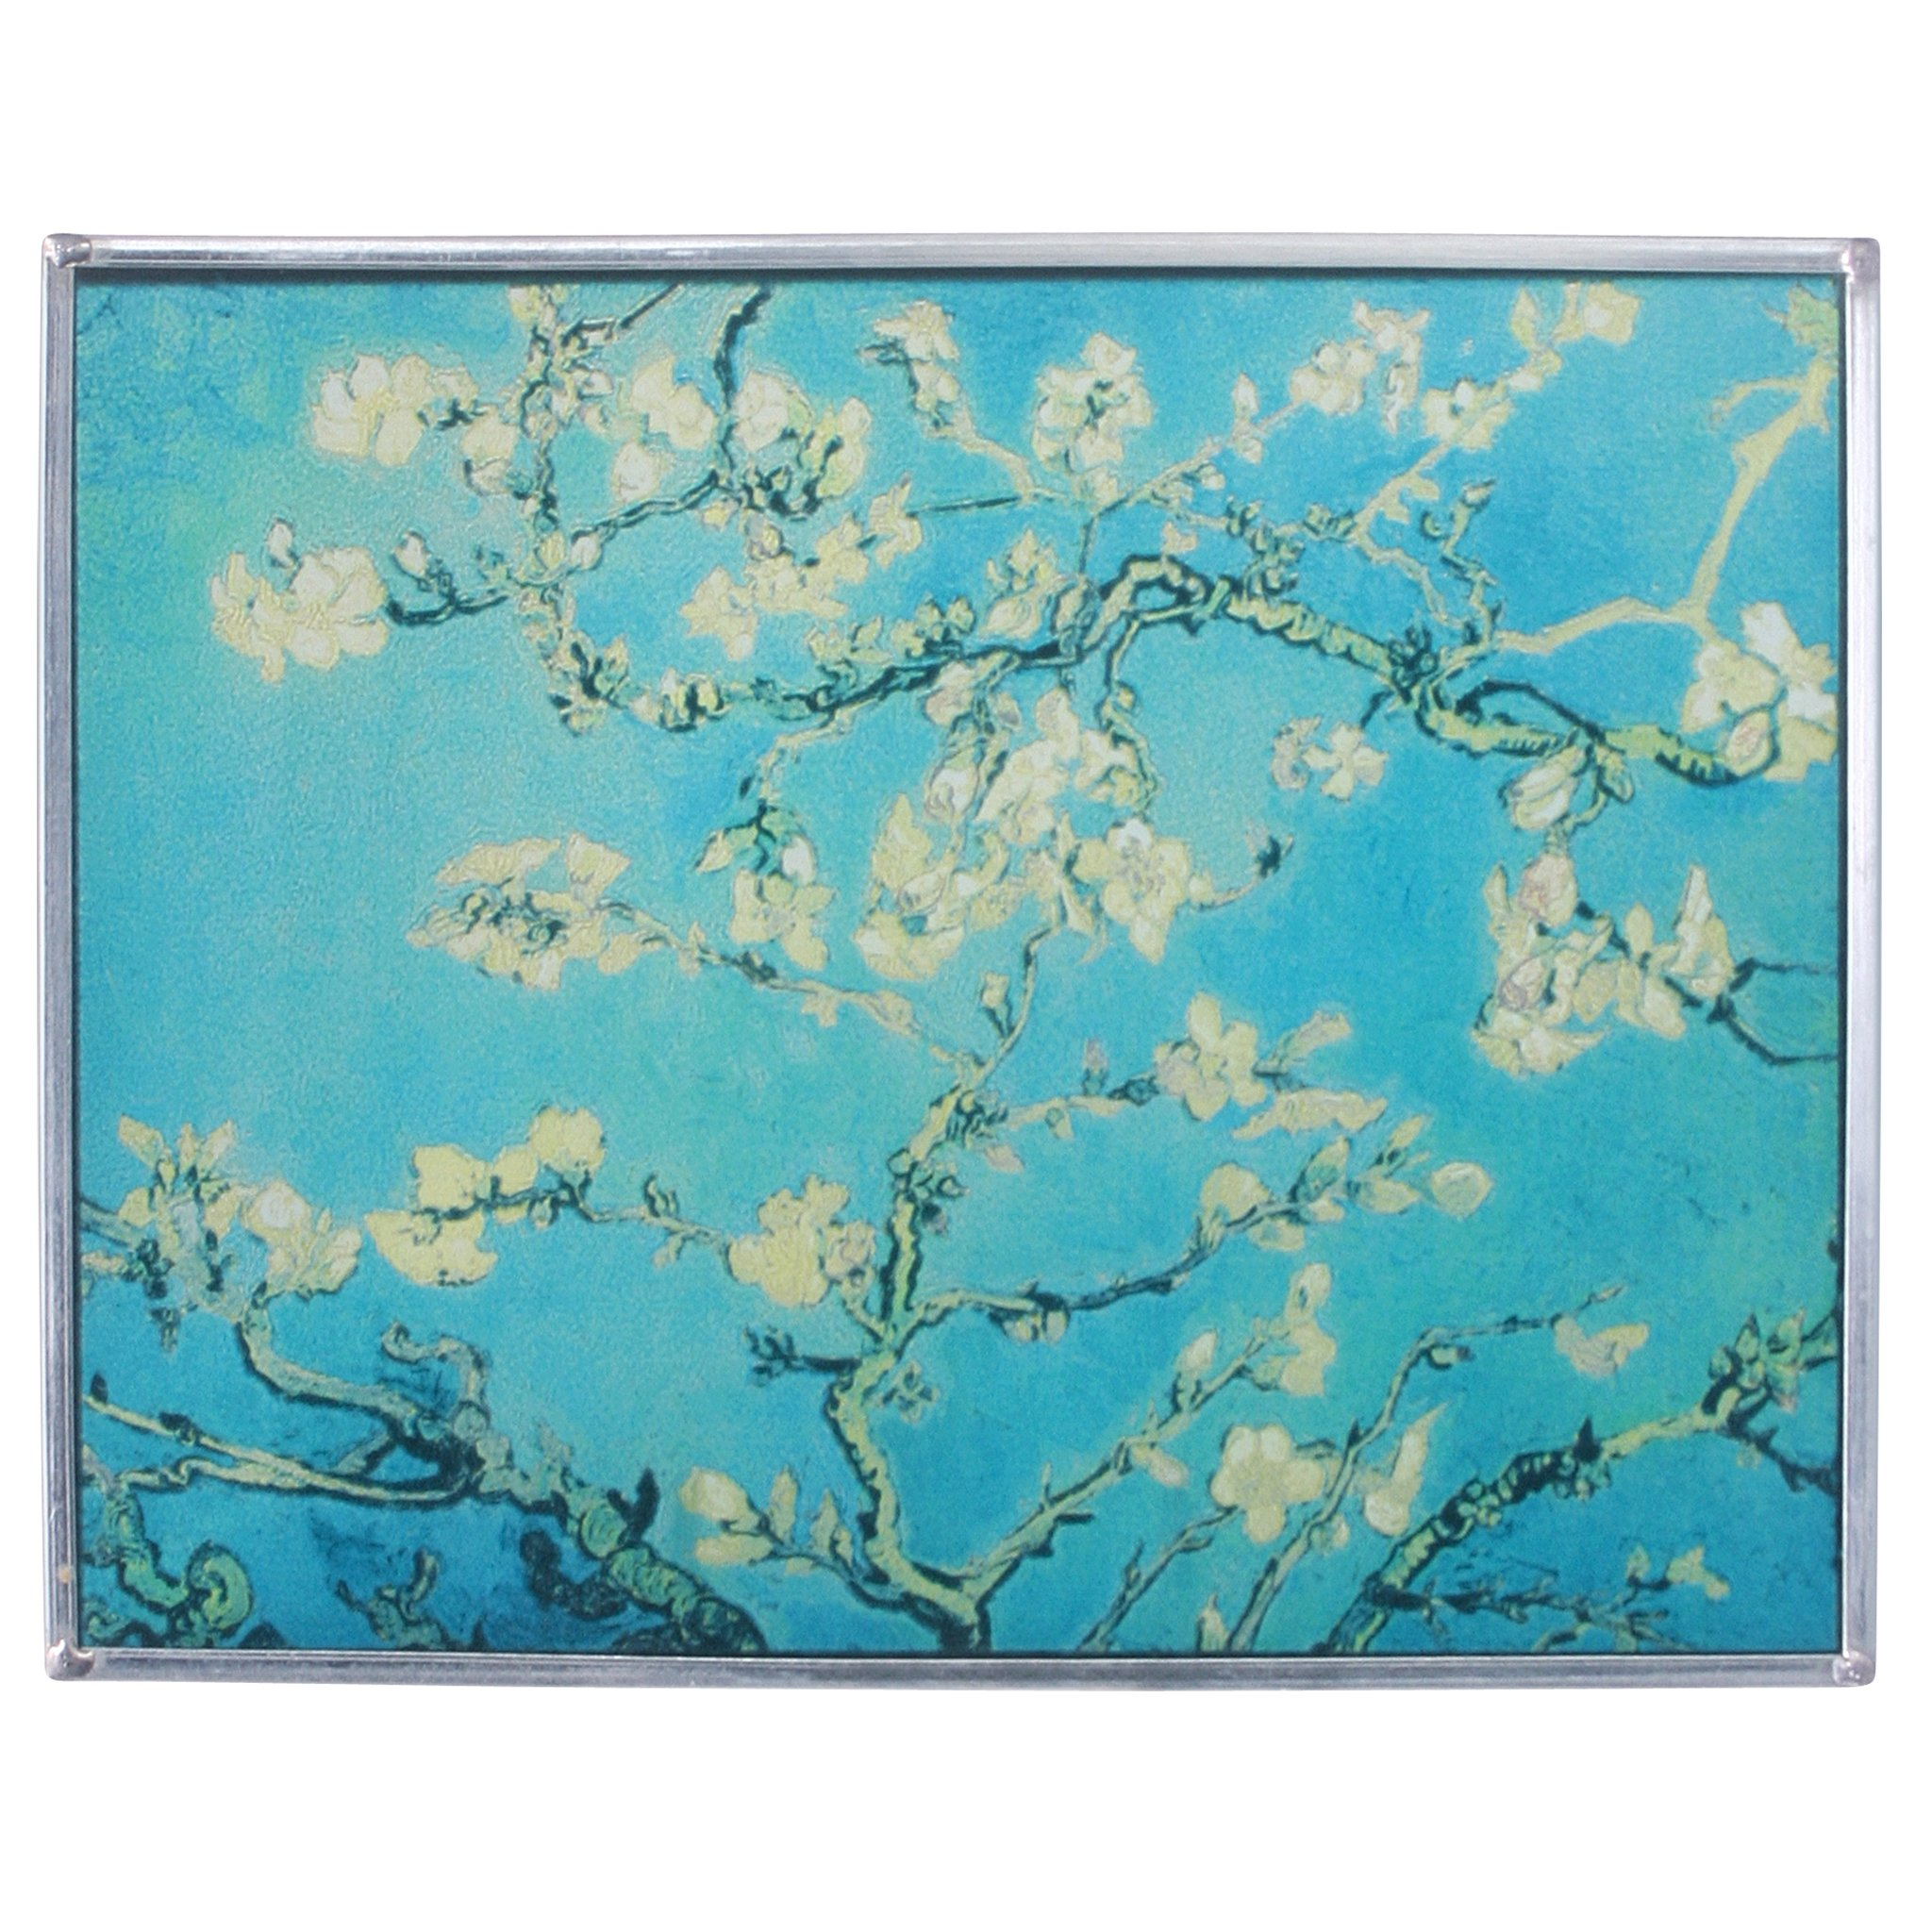 Stained Glass Panel - Van Gogh Almond Blossoms Stained Glass Window Hangings - Art Glass Window Treatments